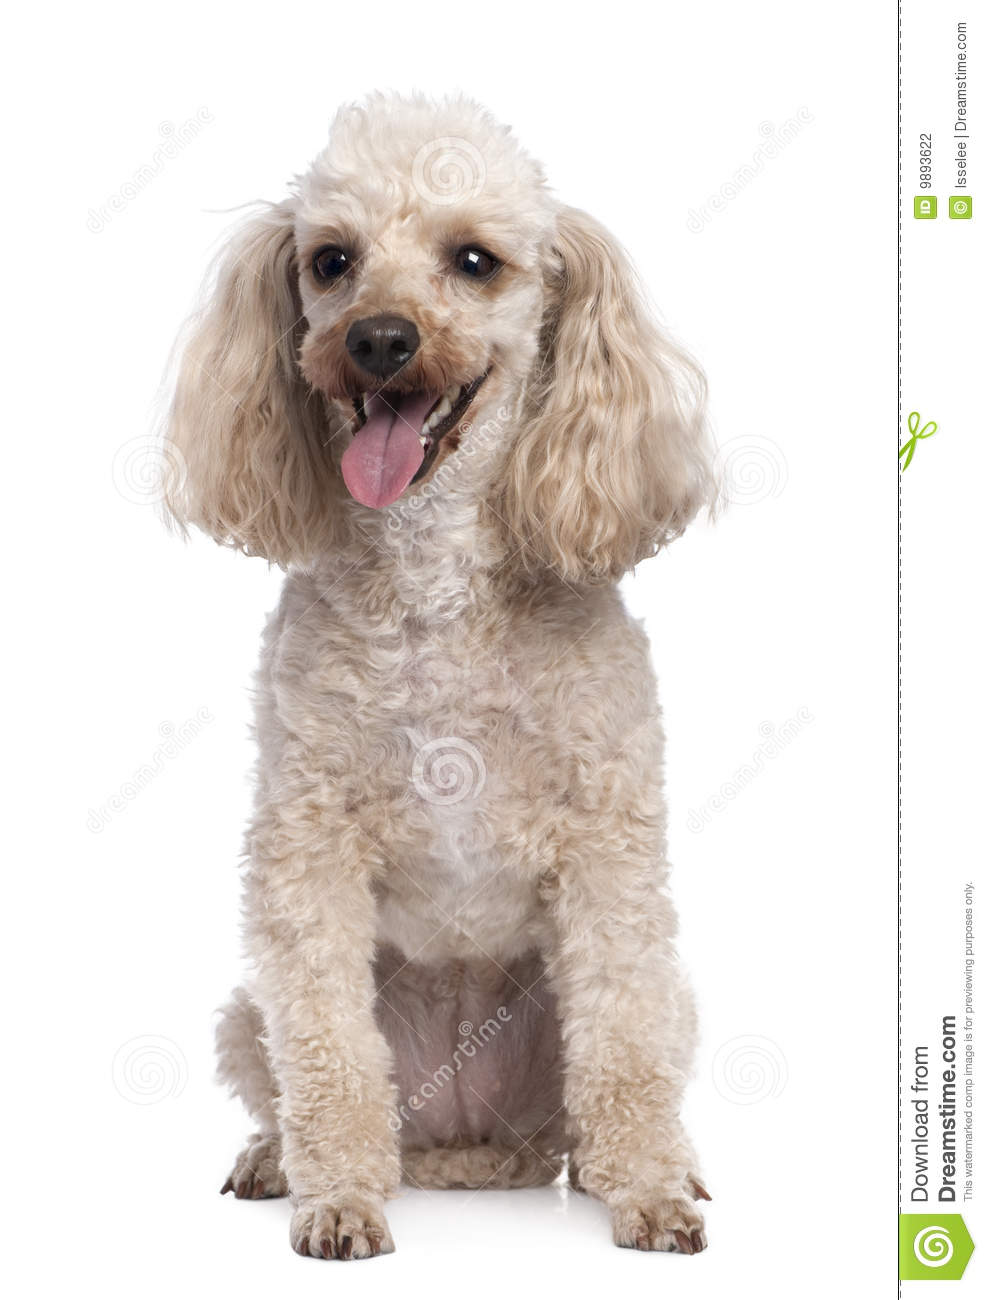 Apricot Poodle Panting 5 Years Old Stock Photo Image